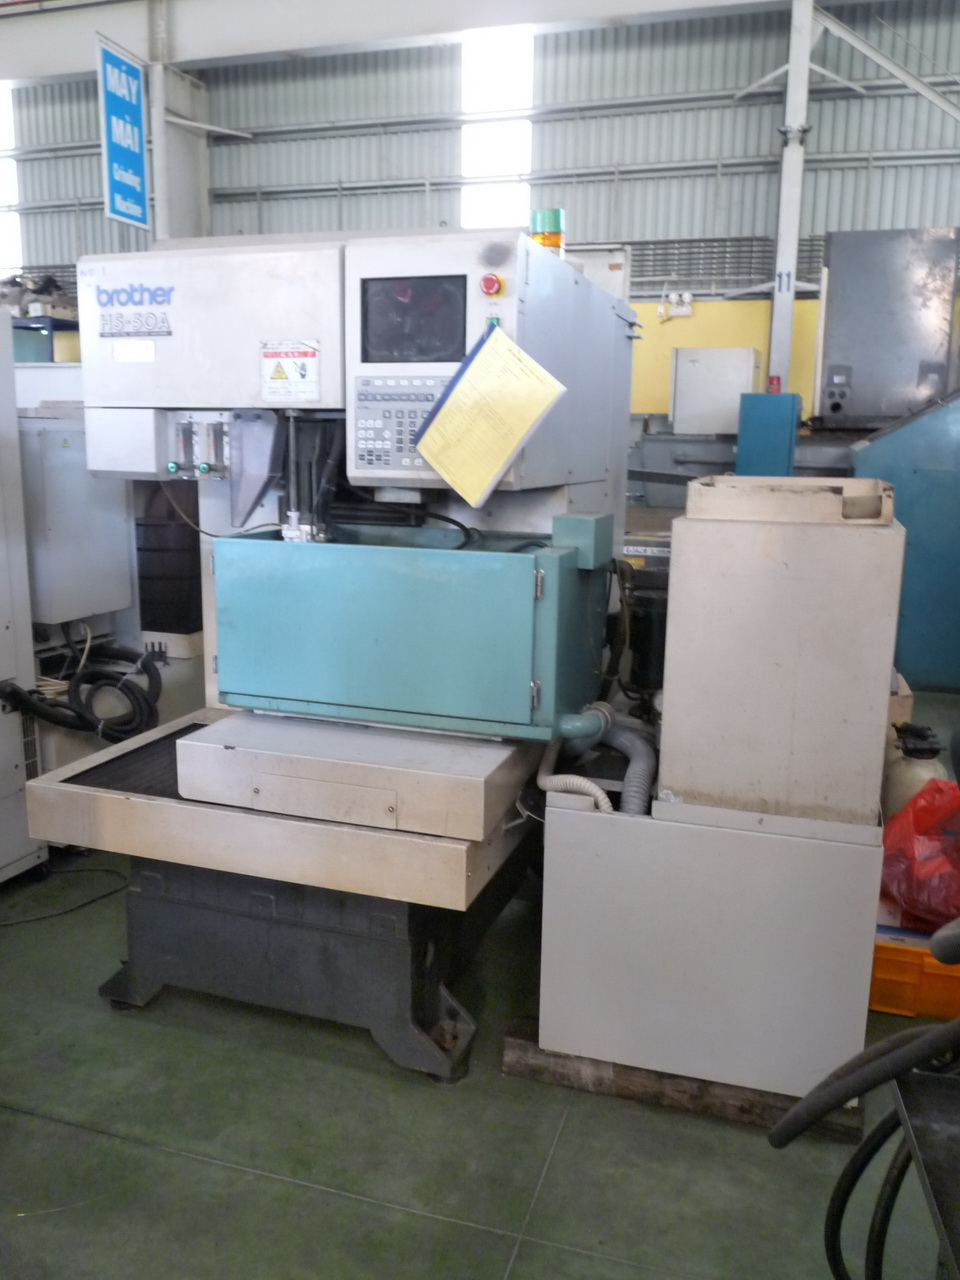 BROTHER HS 50A Wire cutting edm machine - Exapro